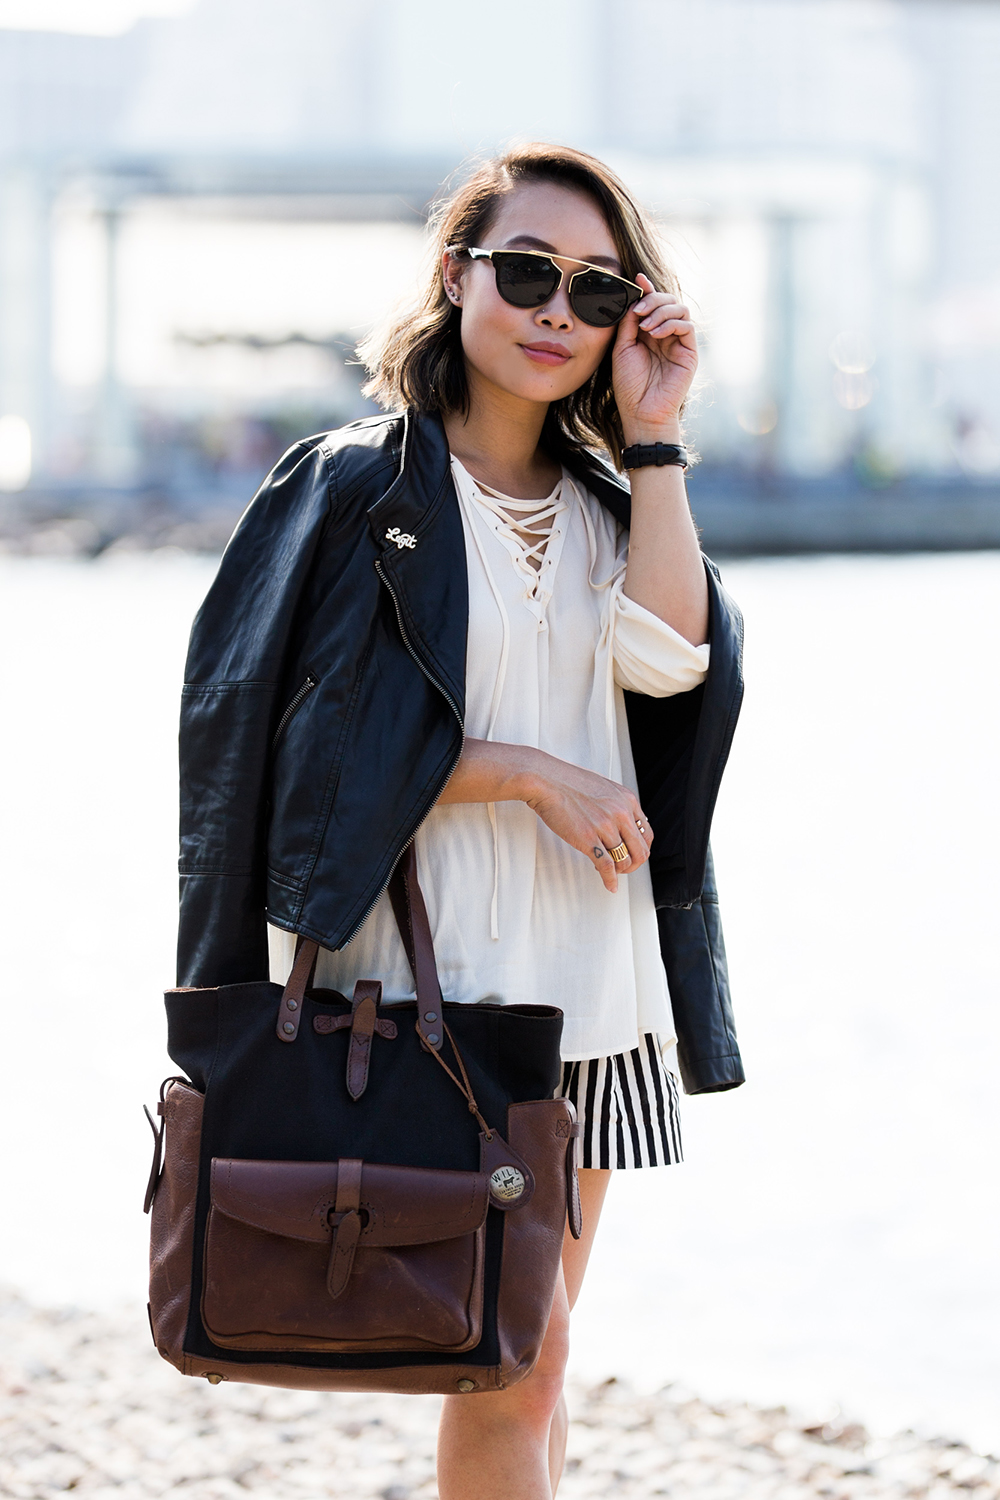 05brooklyn-nyc-newyork-travel-fashion-style